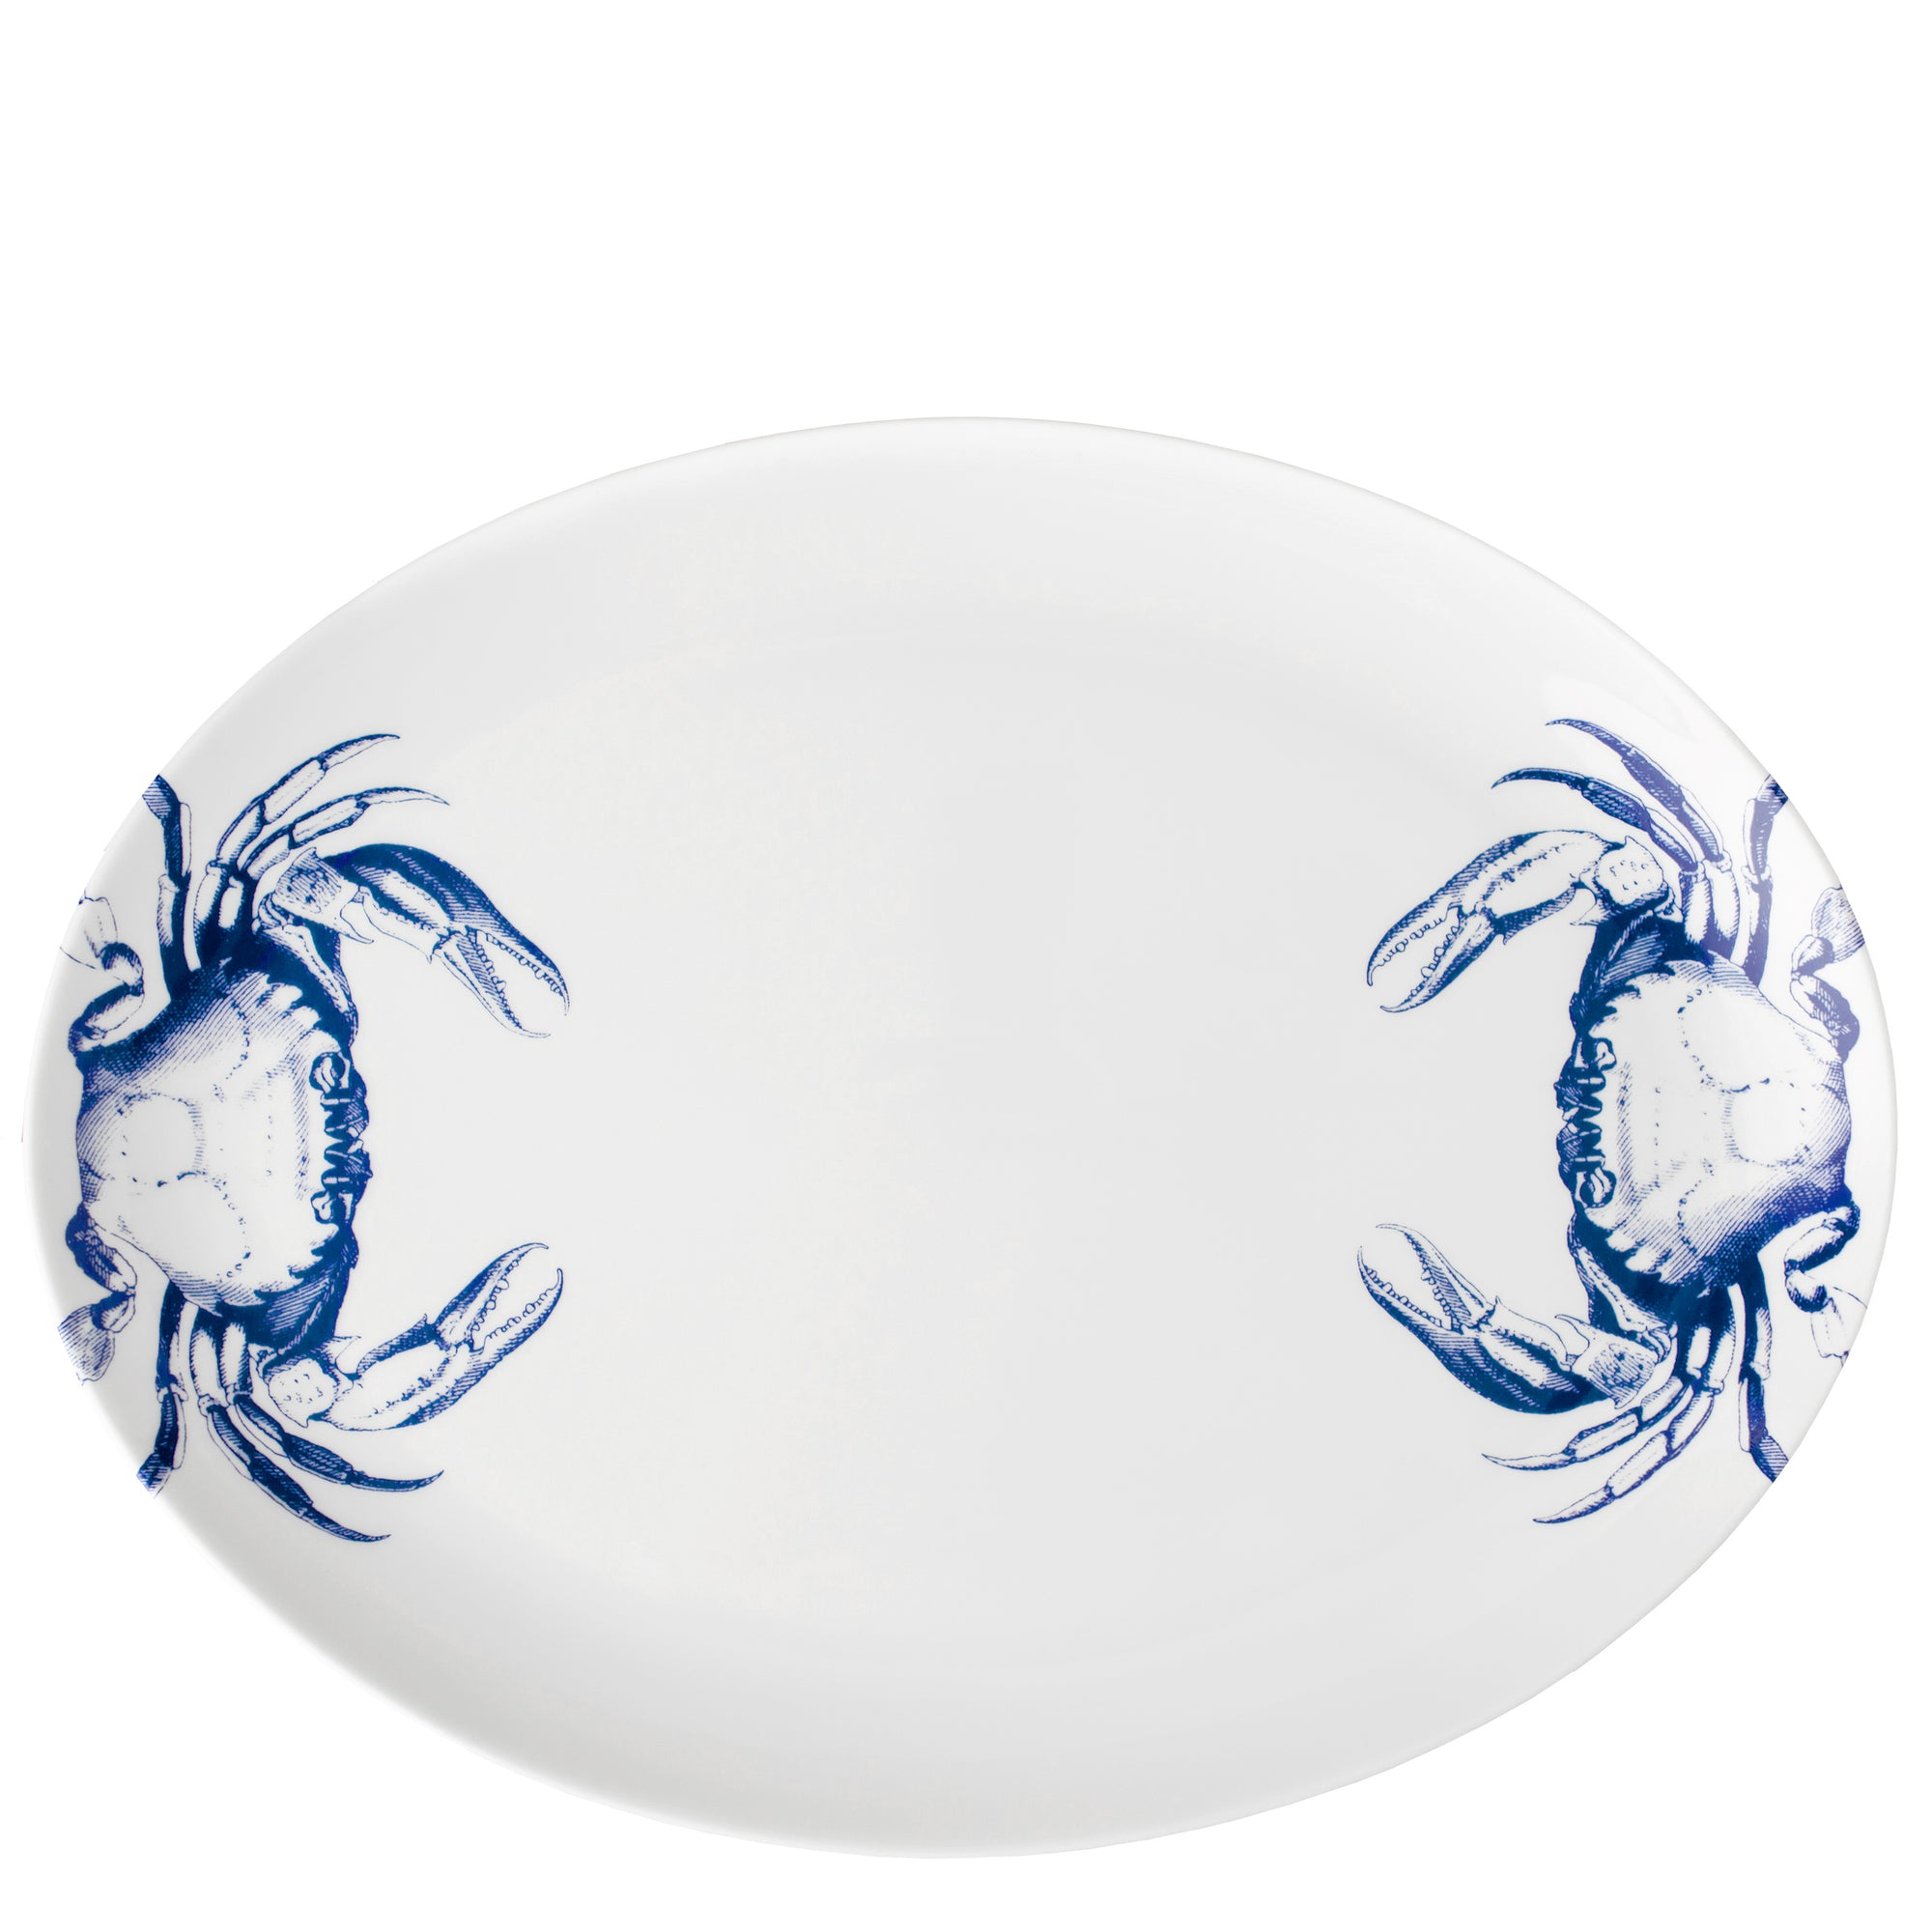 Crabs Blue 14 in COUPE Oval Platter - Caskata